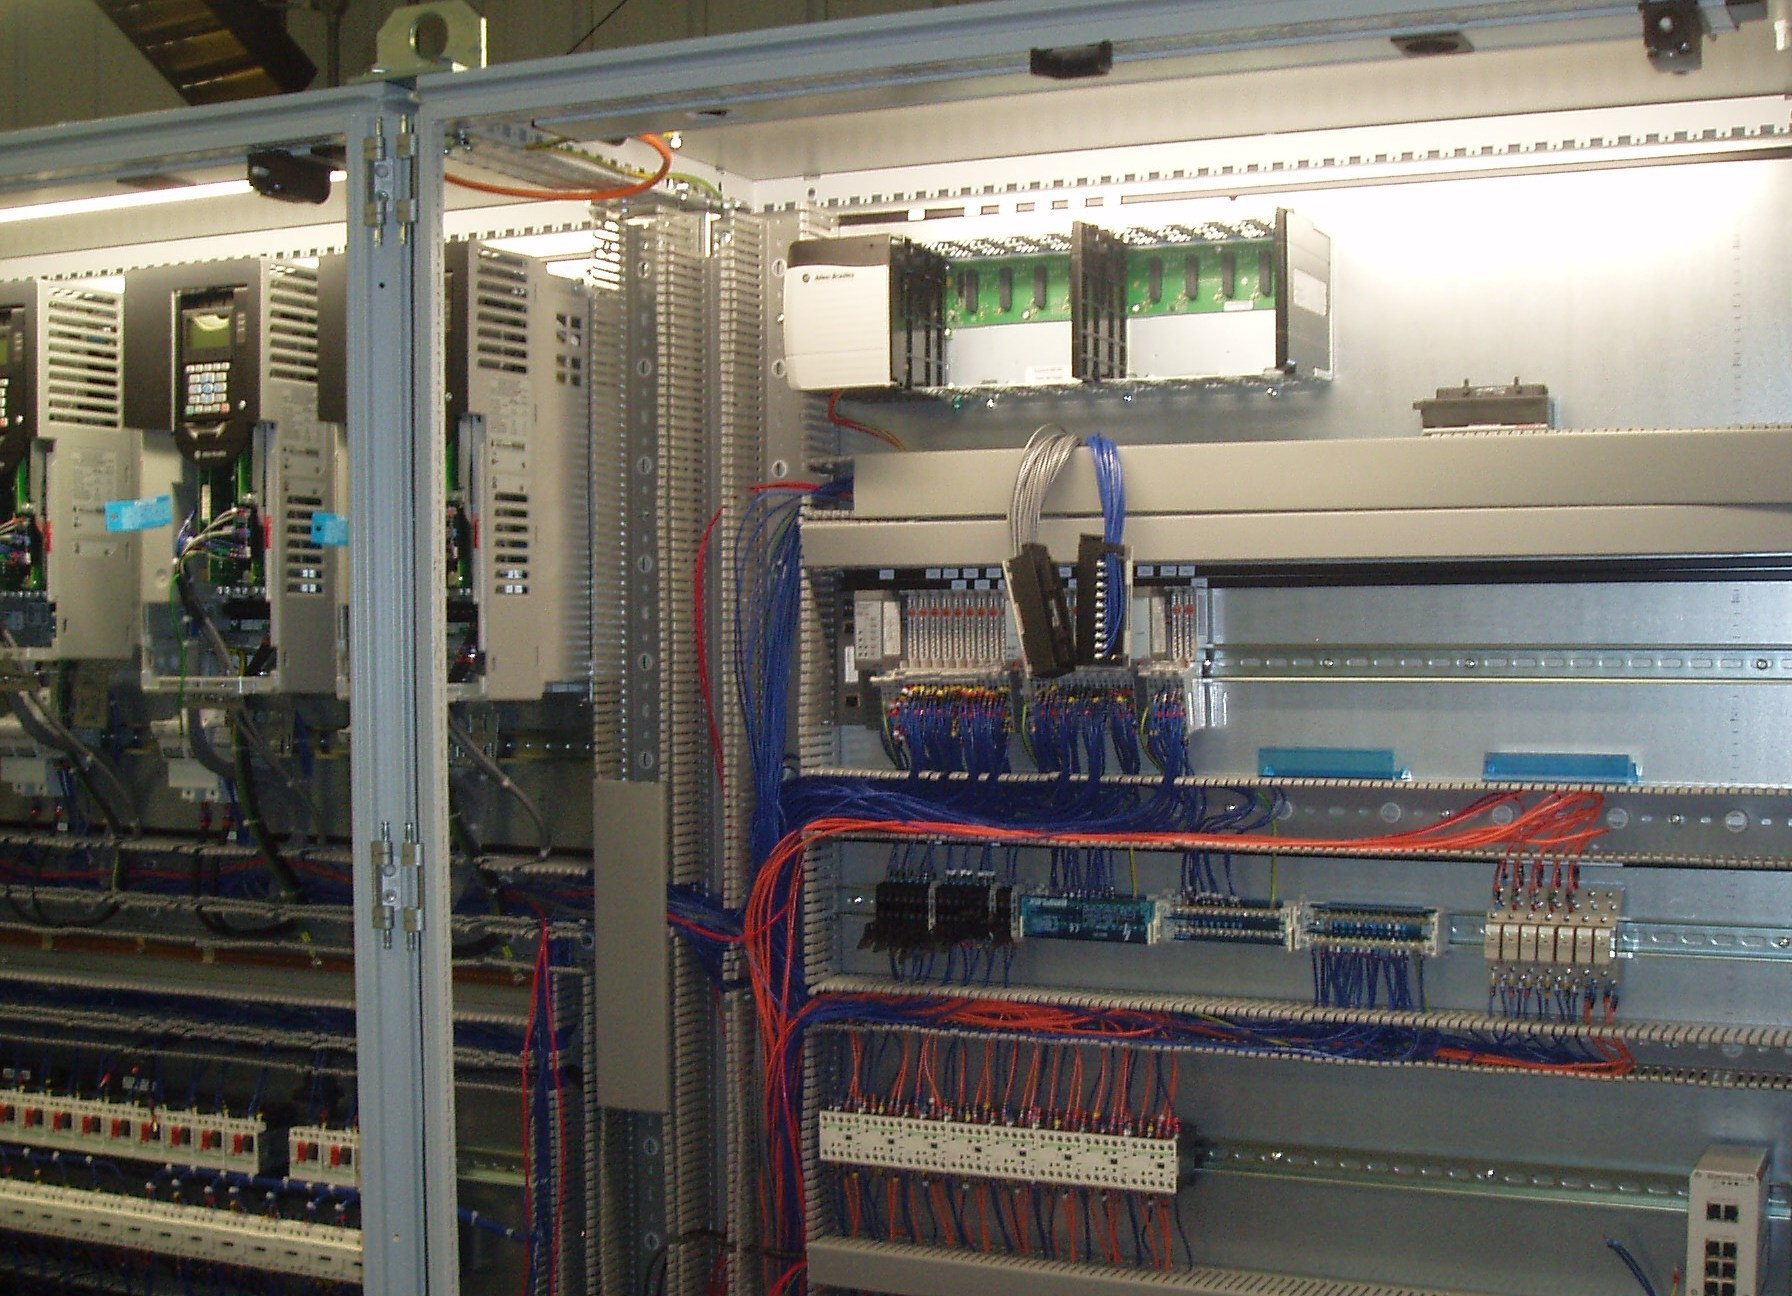 Automax And Plc5 To Powerflex Drives Control Logix Upgrade 753 Wiring Diagram New Plc Panel